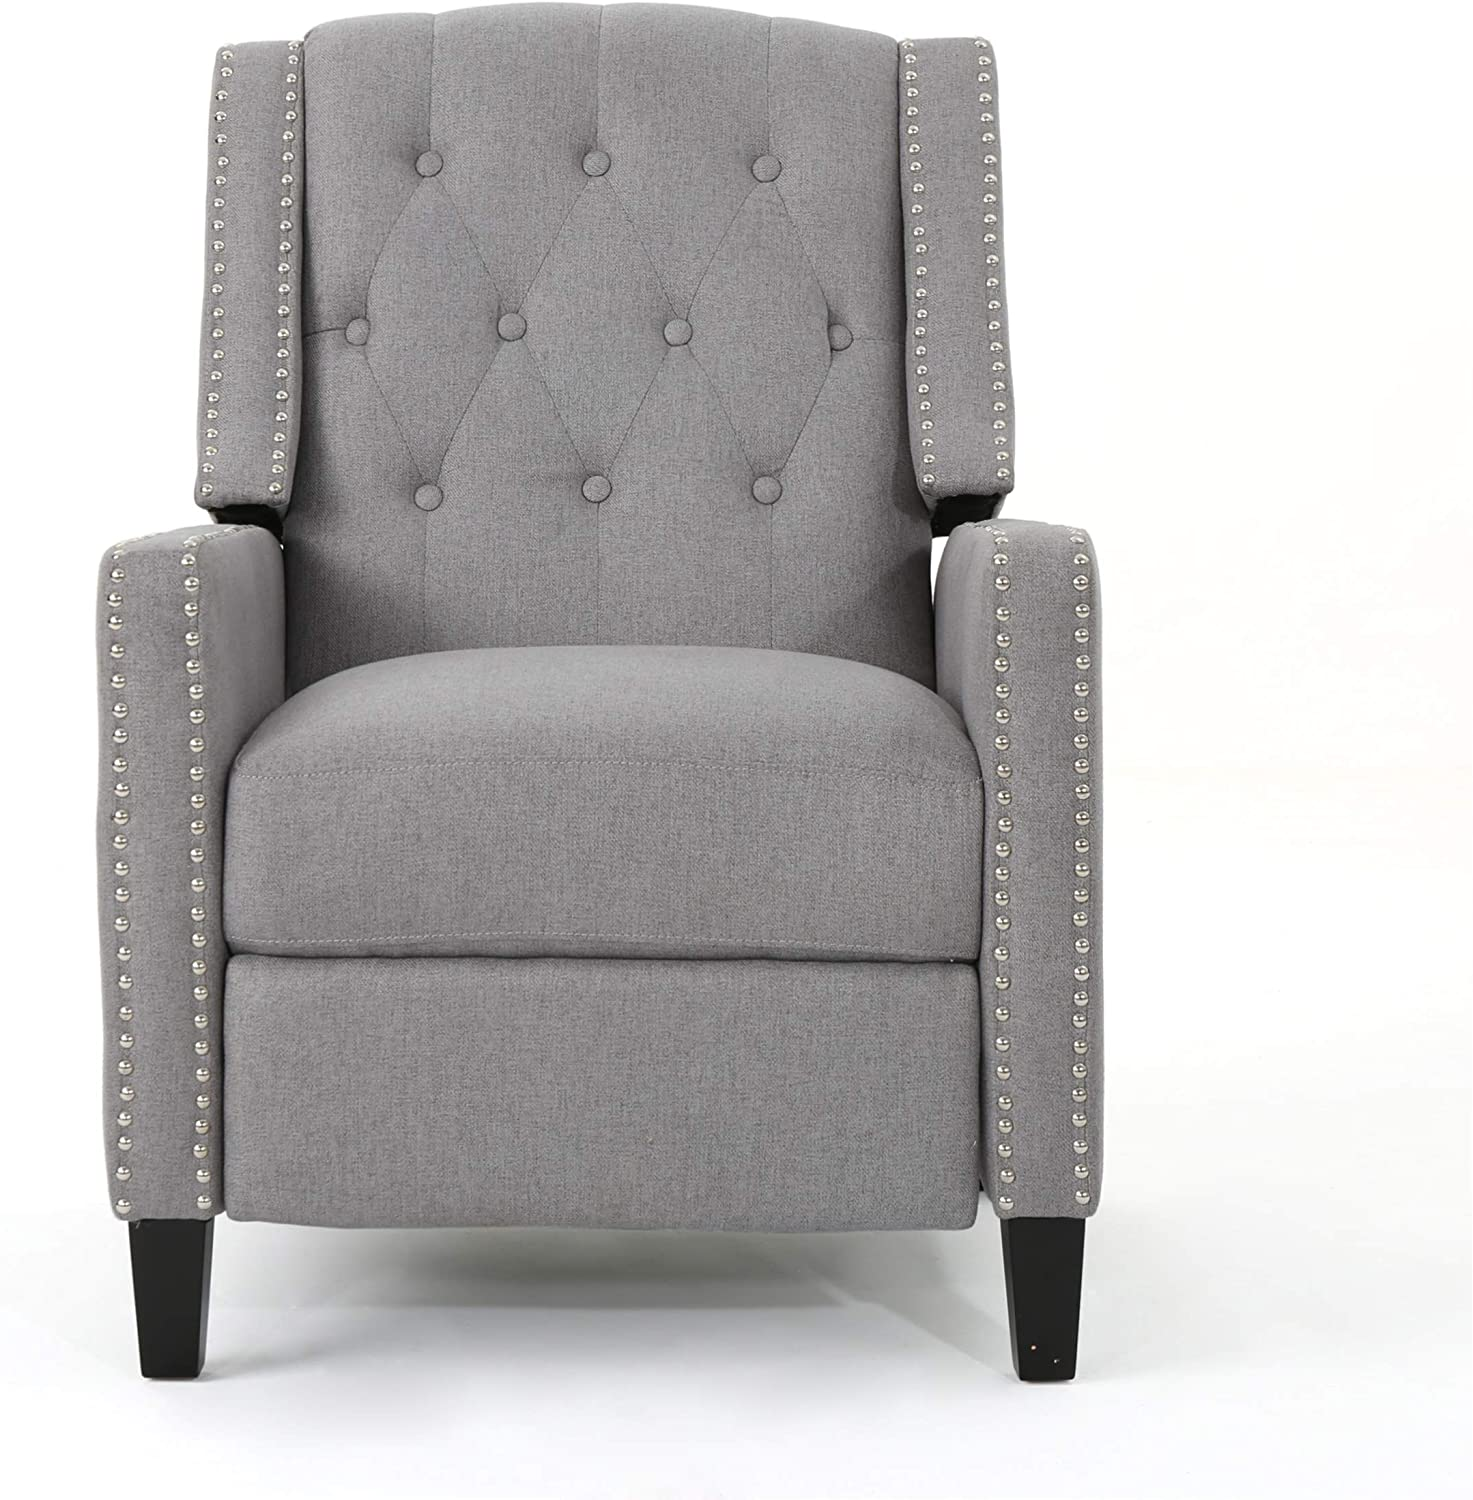 Christopher Knight Home Deirdre Traditional Winged Fabric Recliner, Navy Blue / Dark Brown